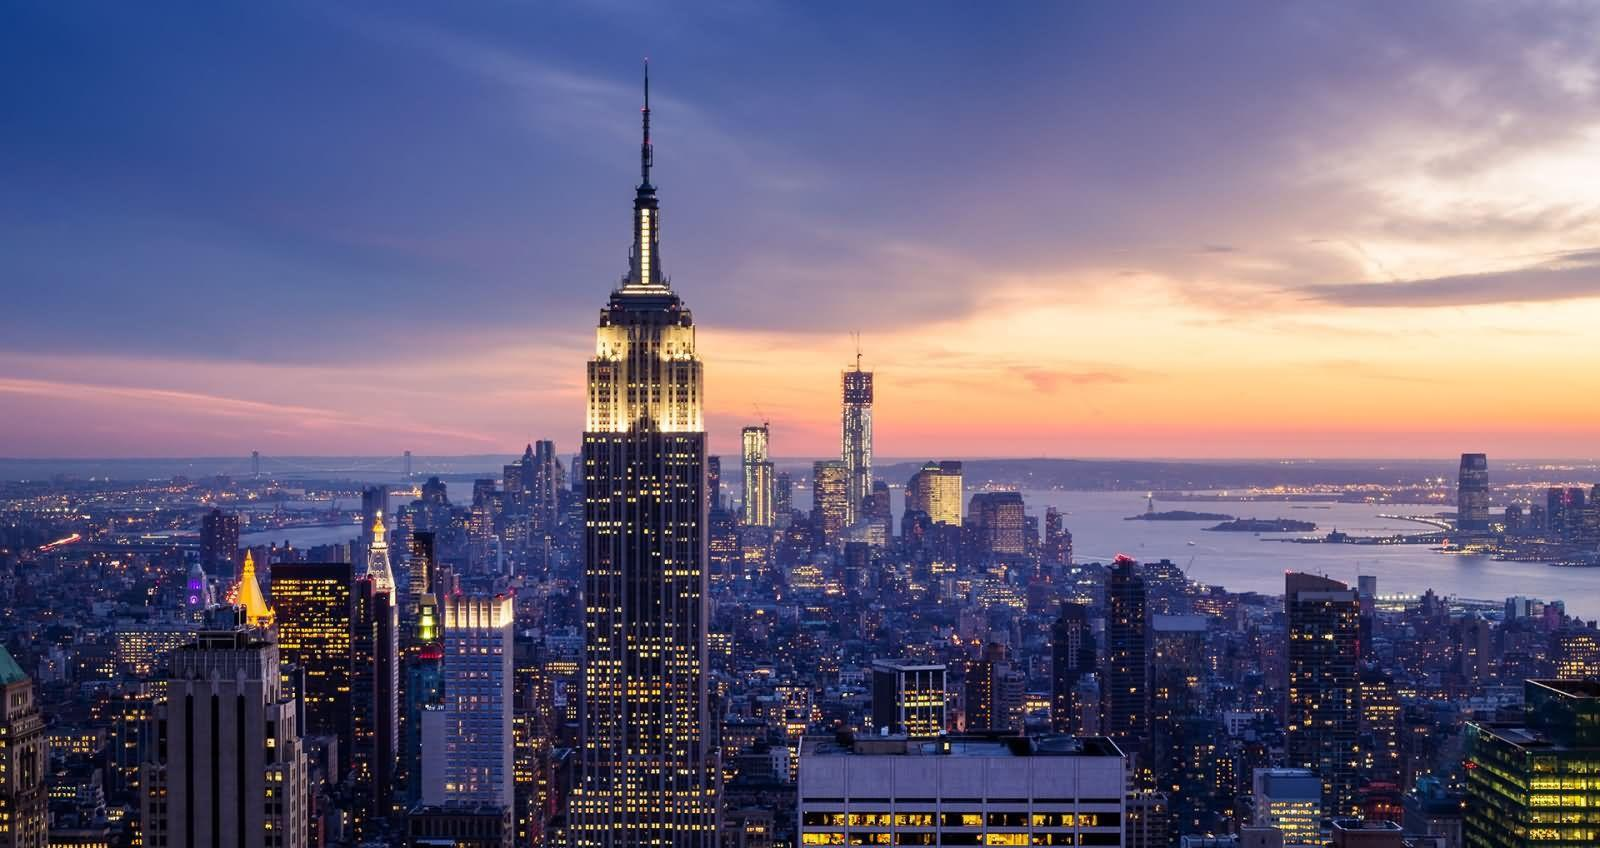 40 Most Adorable Empire State Building, Manhattan Night View